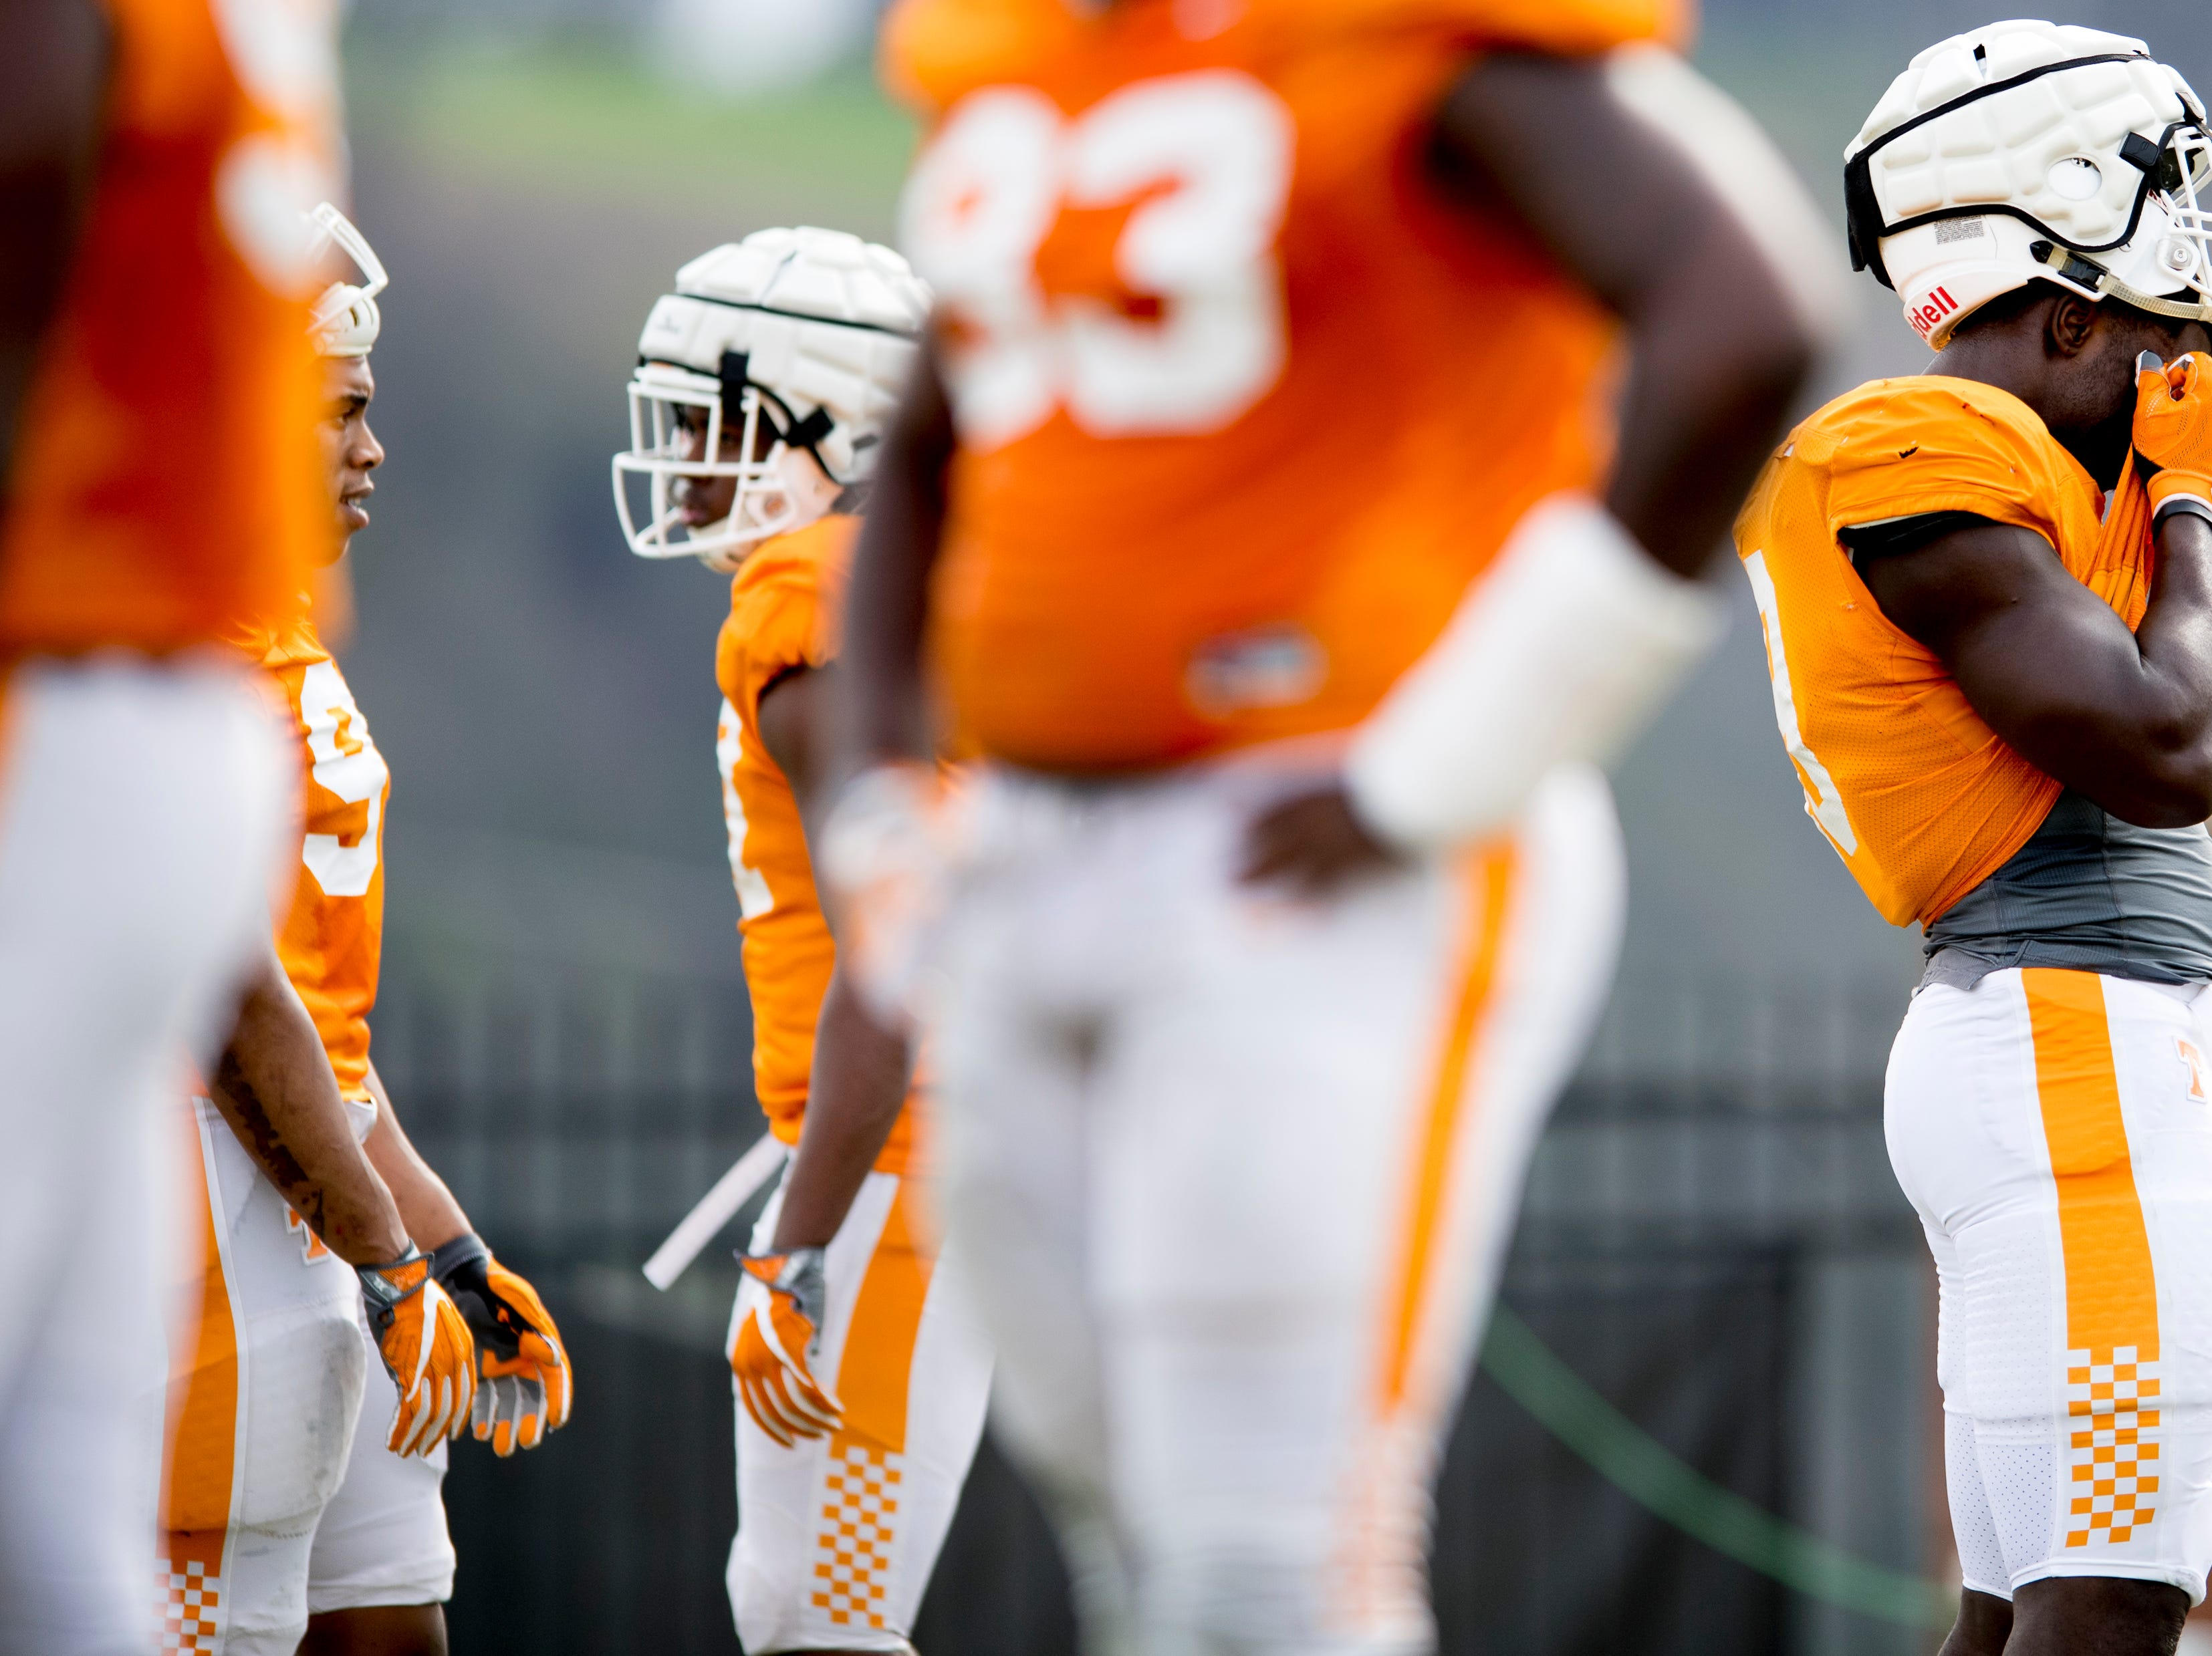 A player wipes their face during Tennessee spring football practice at  Haslam Field in Knoxville, Tennessee on Wednesday, March 13, 2019.